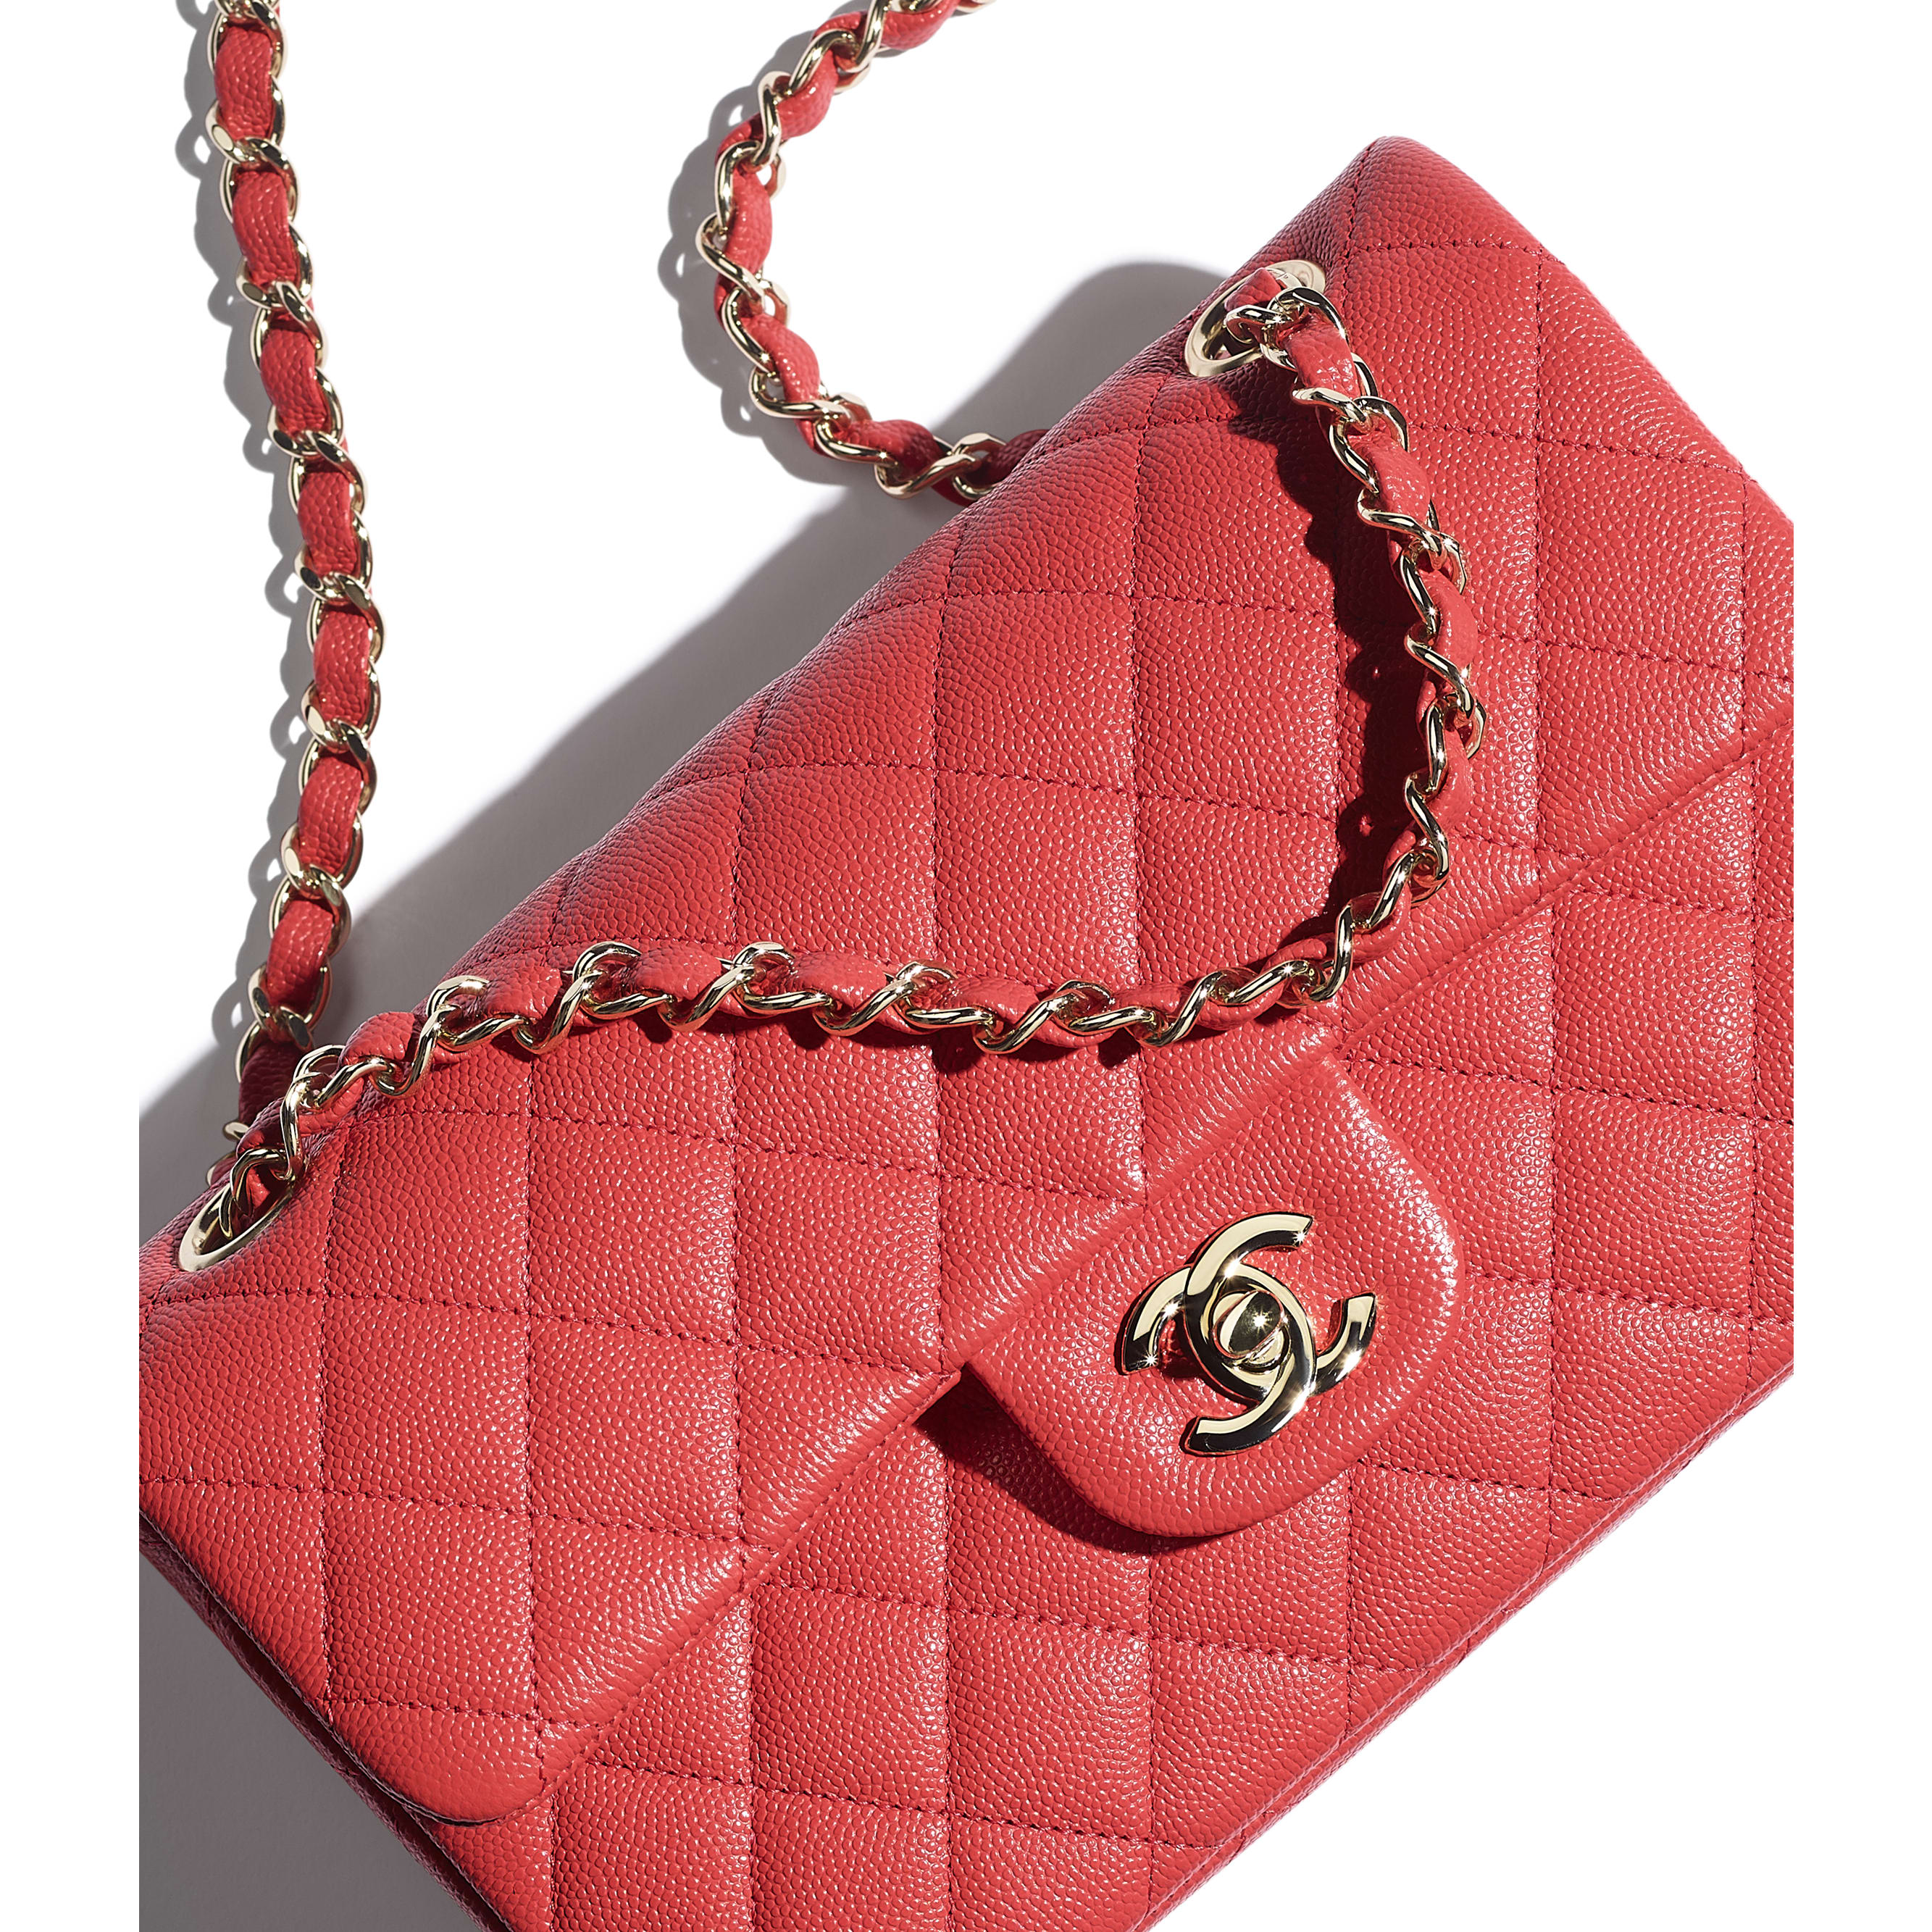 Small Classic Handbag - Red - Grained Calfskin & Gold-Tone Metal - CHANEL - Extra view - see standard sized version